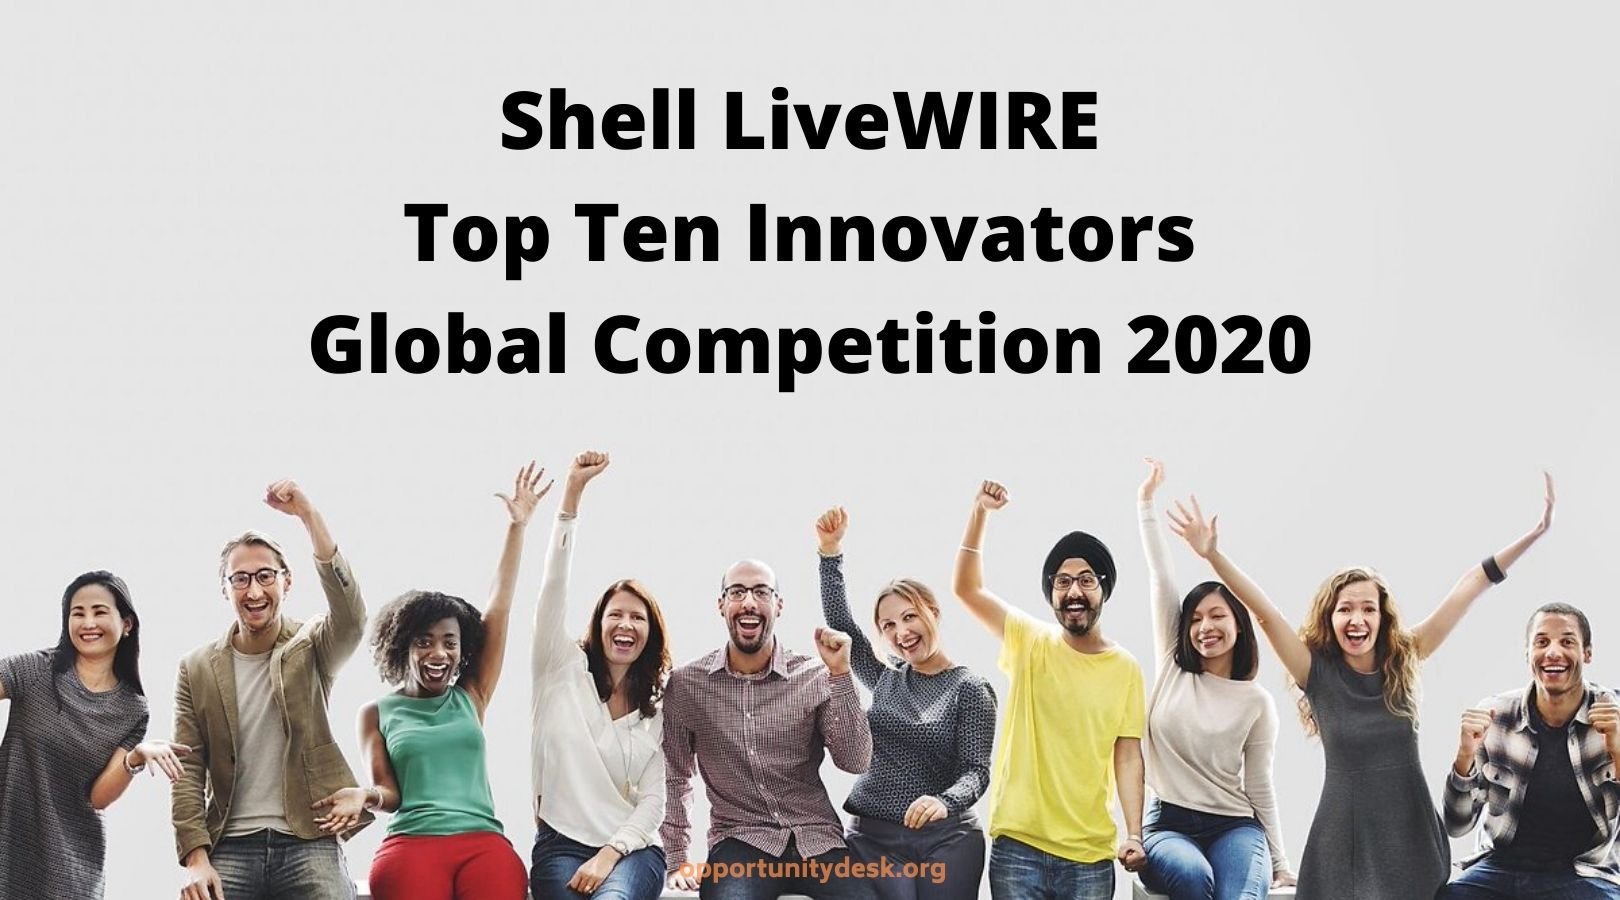 Shell LiveWIRE 'Top Ten Innovators' Global Competition 2020 (Win up to US $20,000)